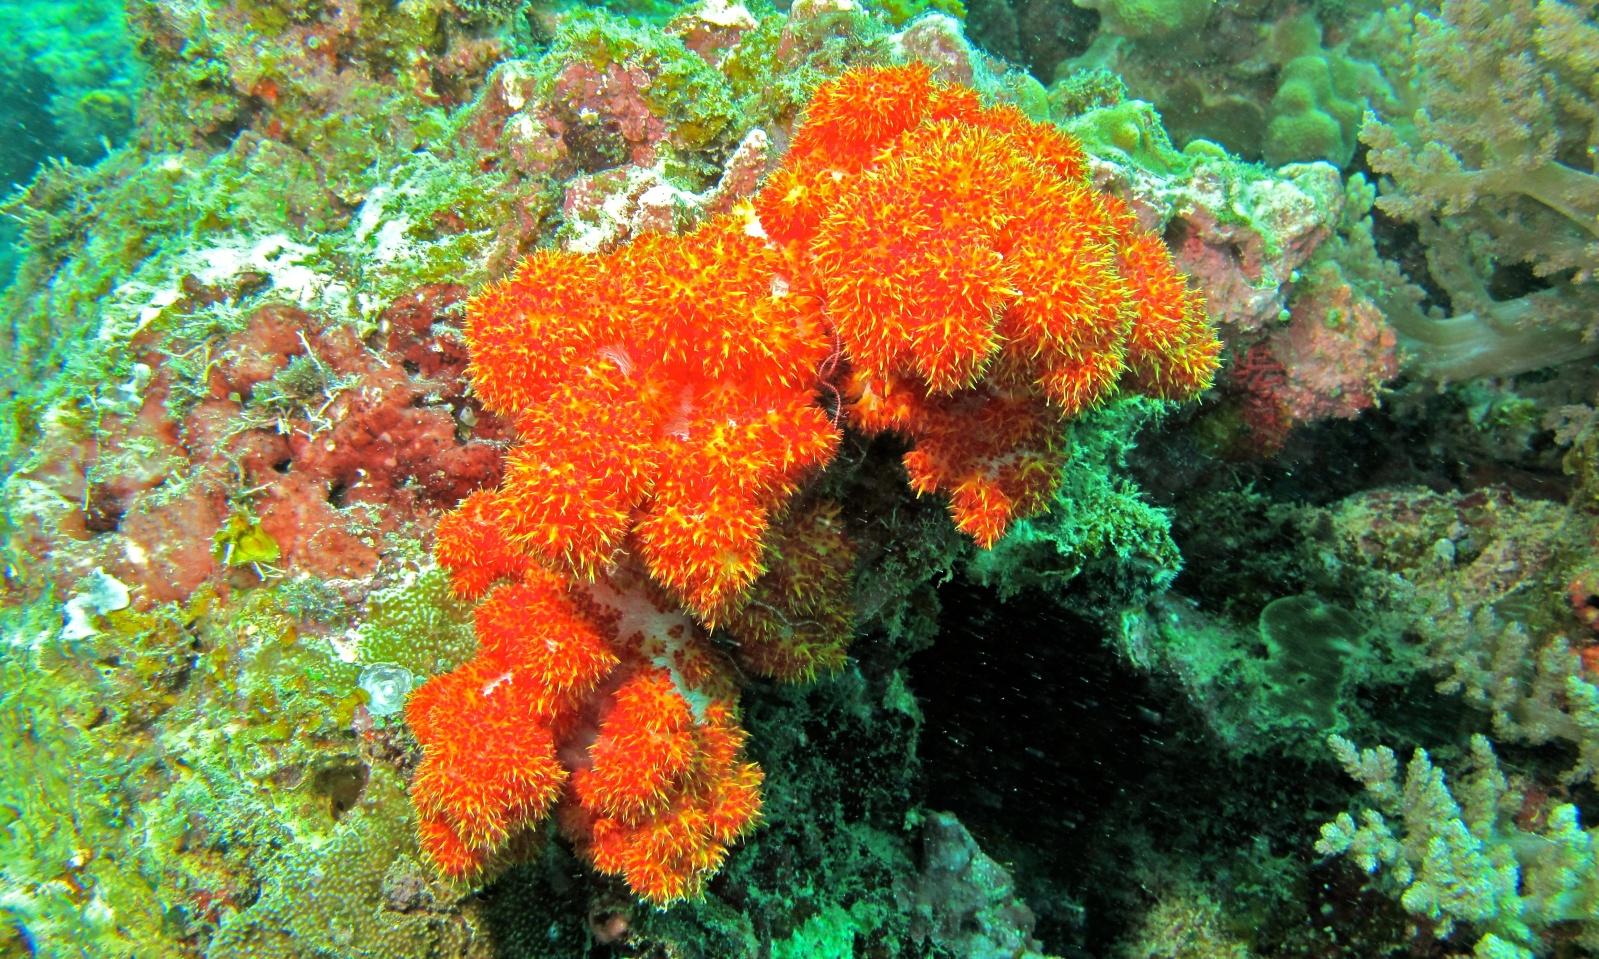 Tree Coral (Dendronephthya sp.) at Black Ray Channel, Pulau Kapalai, Sabah